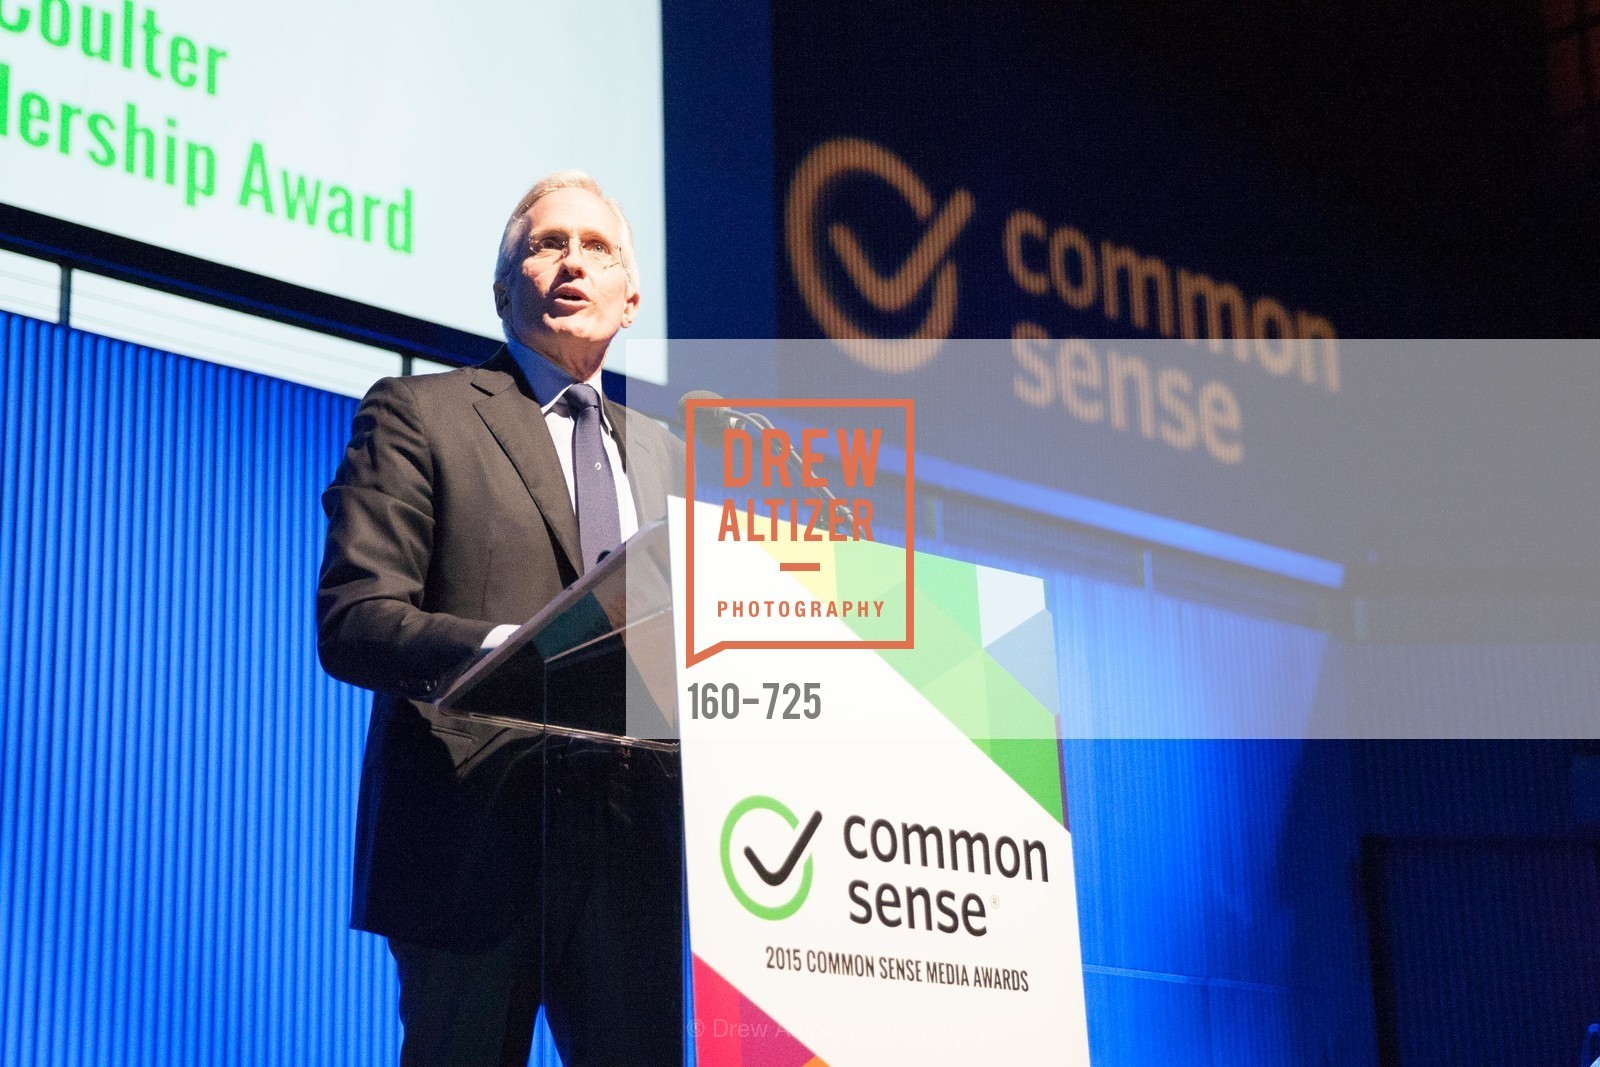 James Coulter, COMMON SENSE Media Awards 2015, US, May 14th, 2015,Drew Altizer, Drew Altizer Photography, full-service agency, private events, San Francisco photographer, photographer california